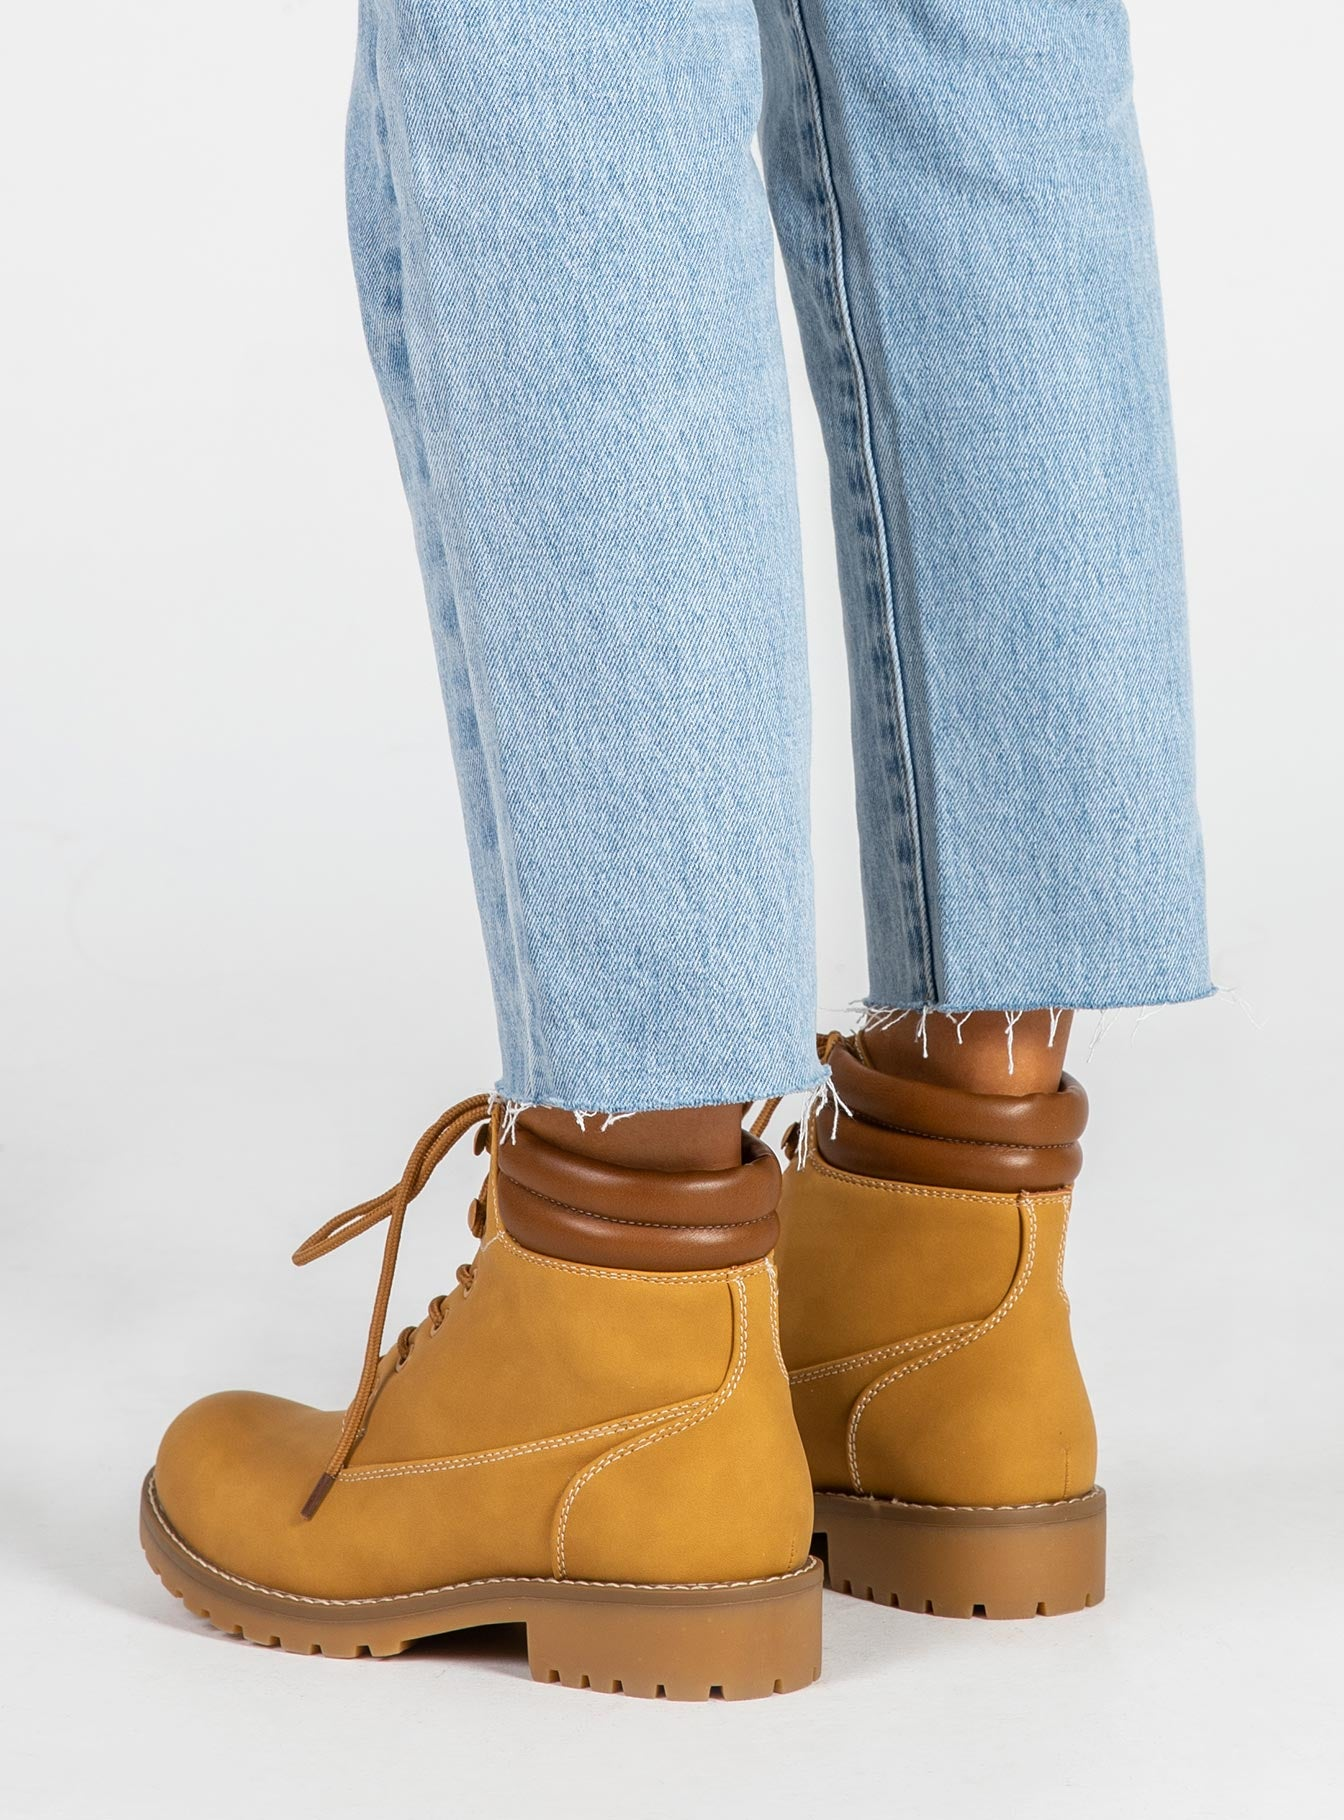 Therapy Drew Tan Boots